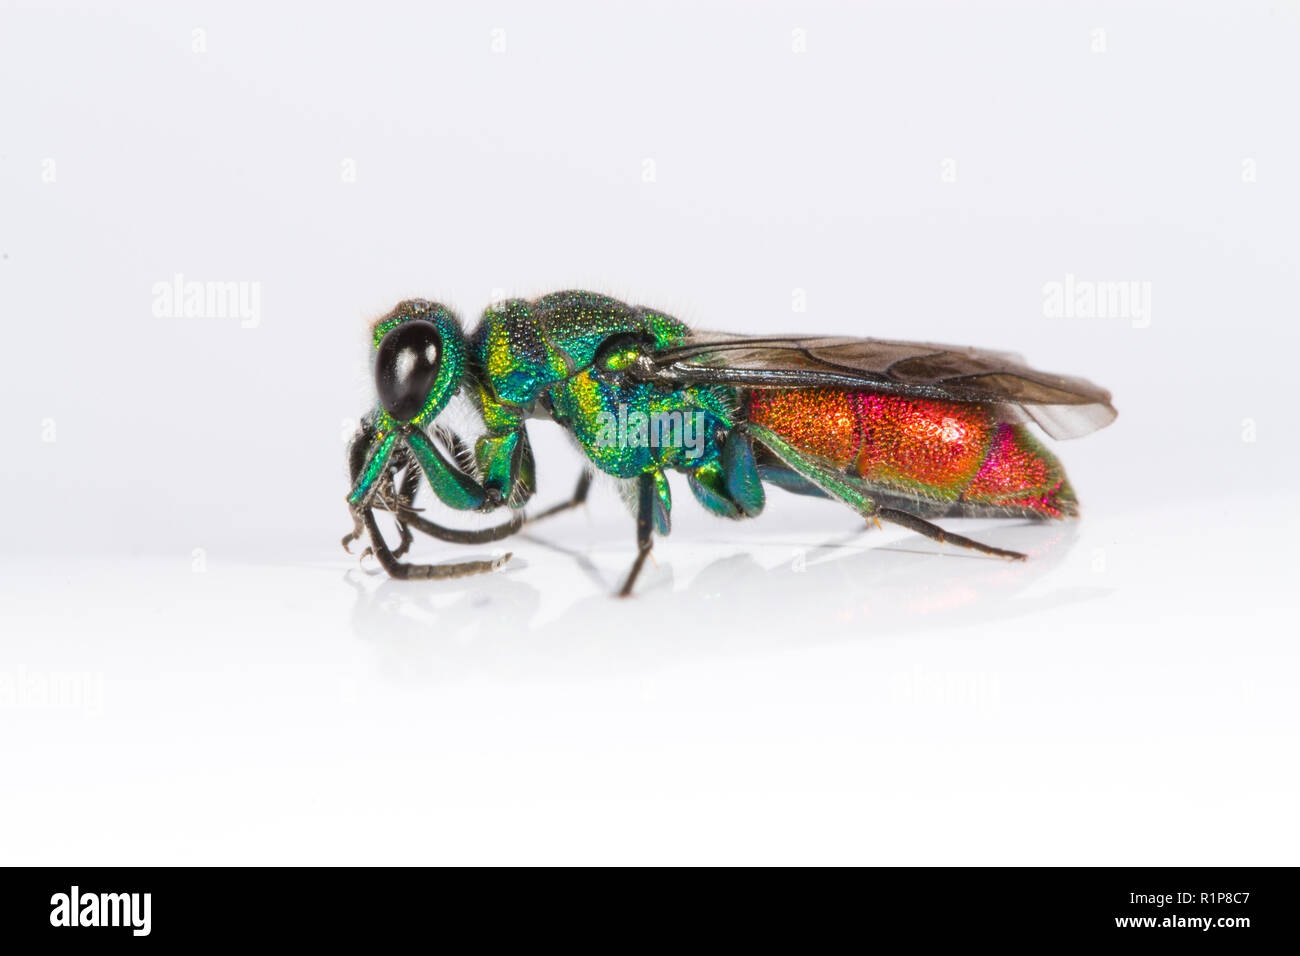 Ruby-tailed wasp (Chrysis sp.) adult female. Live insect photographed on a white background. Powys, Wales. June. - Stock Image